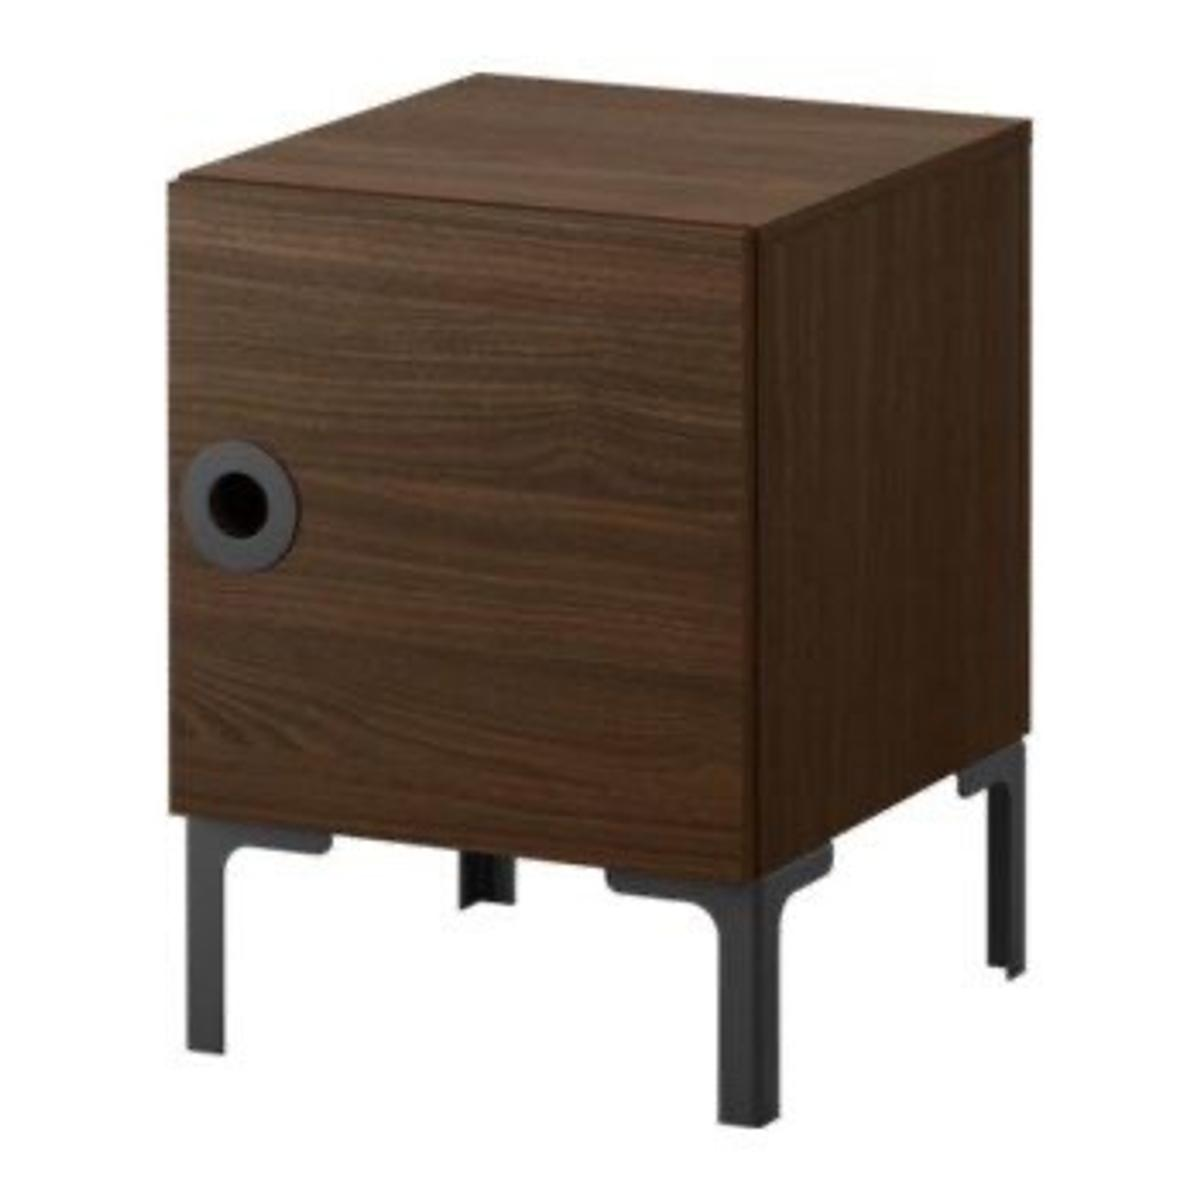 Bedside table used only in the guest room. We're also selling a matching bed and mattress, wardrobe and chest of drawers - please check other ads